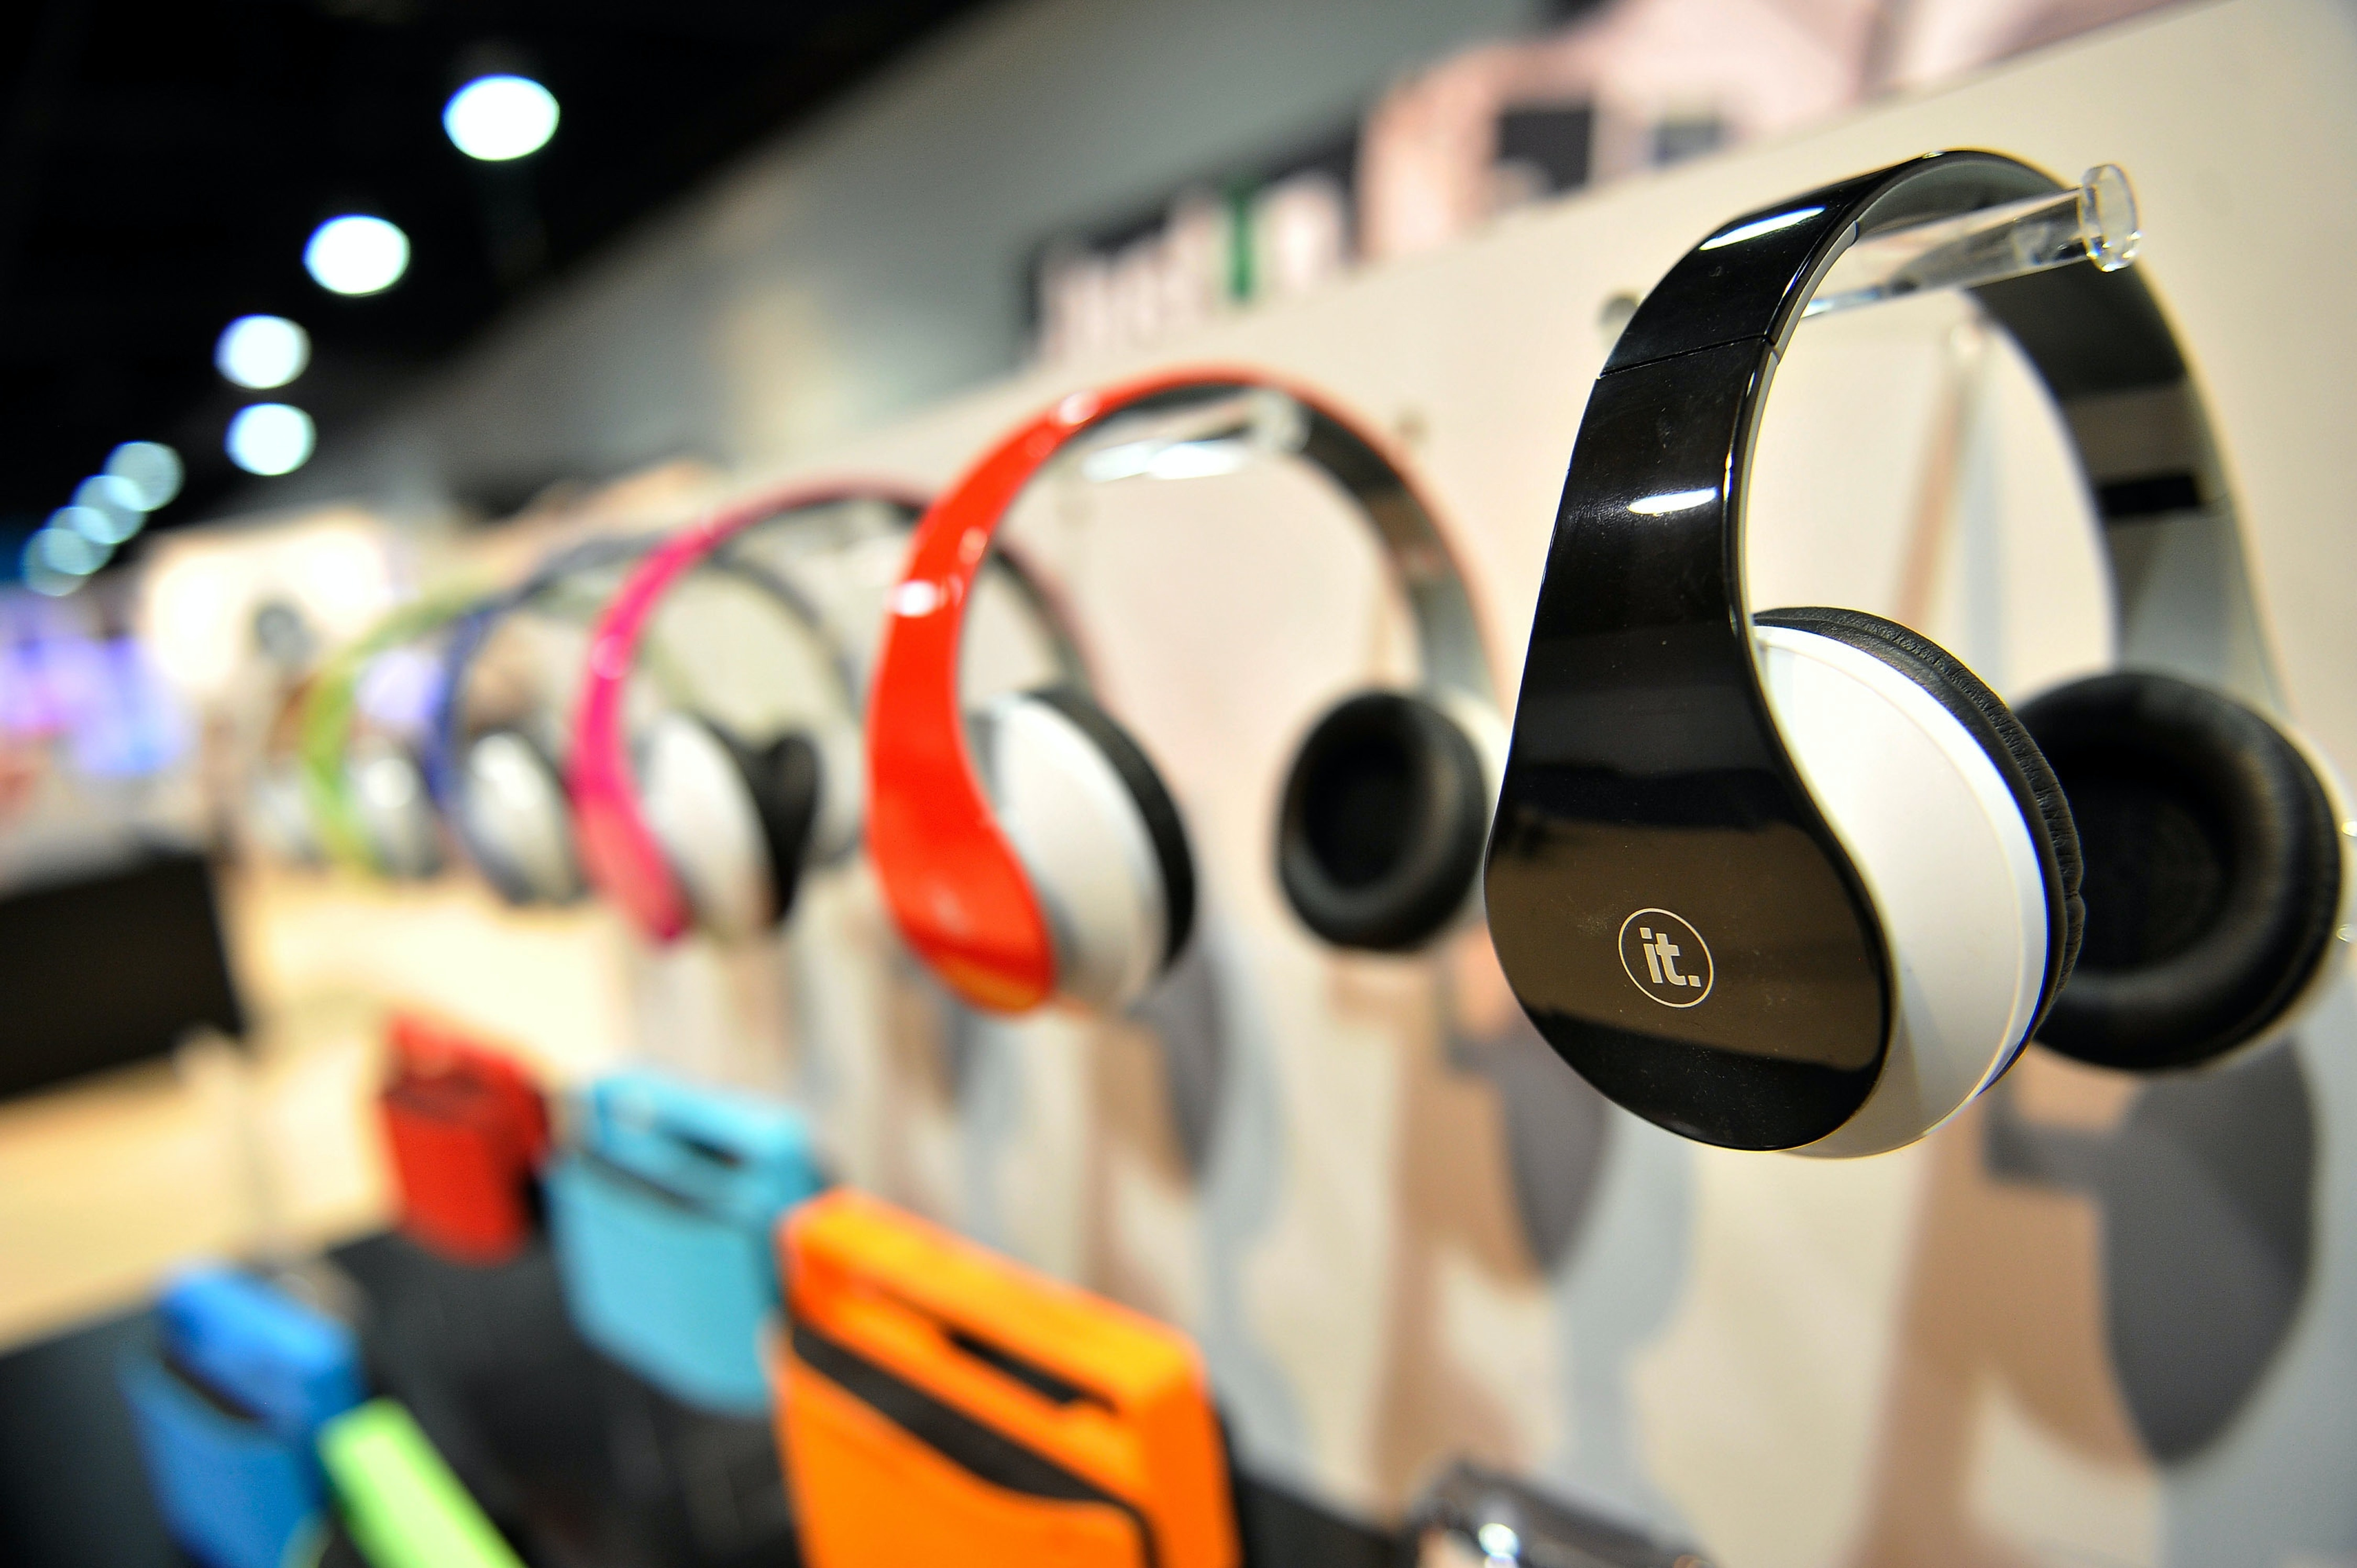 Innovative Technology's ITHWB-500 Bluetooth enabled headphones are displayed at the 2015 International CES at the Las Vegas Convention Center on January 6, 2015 in Las Vegas, Nevada.